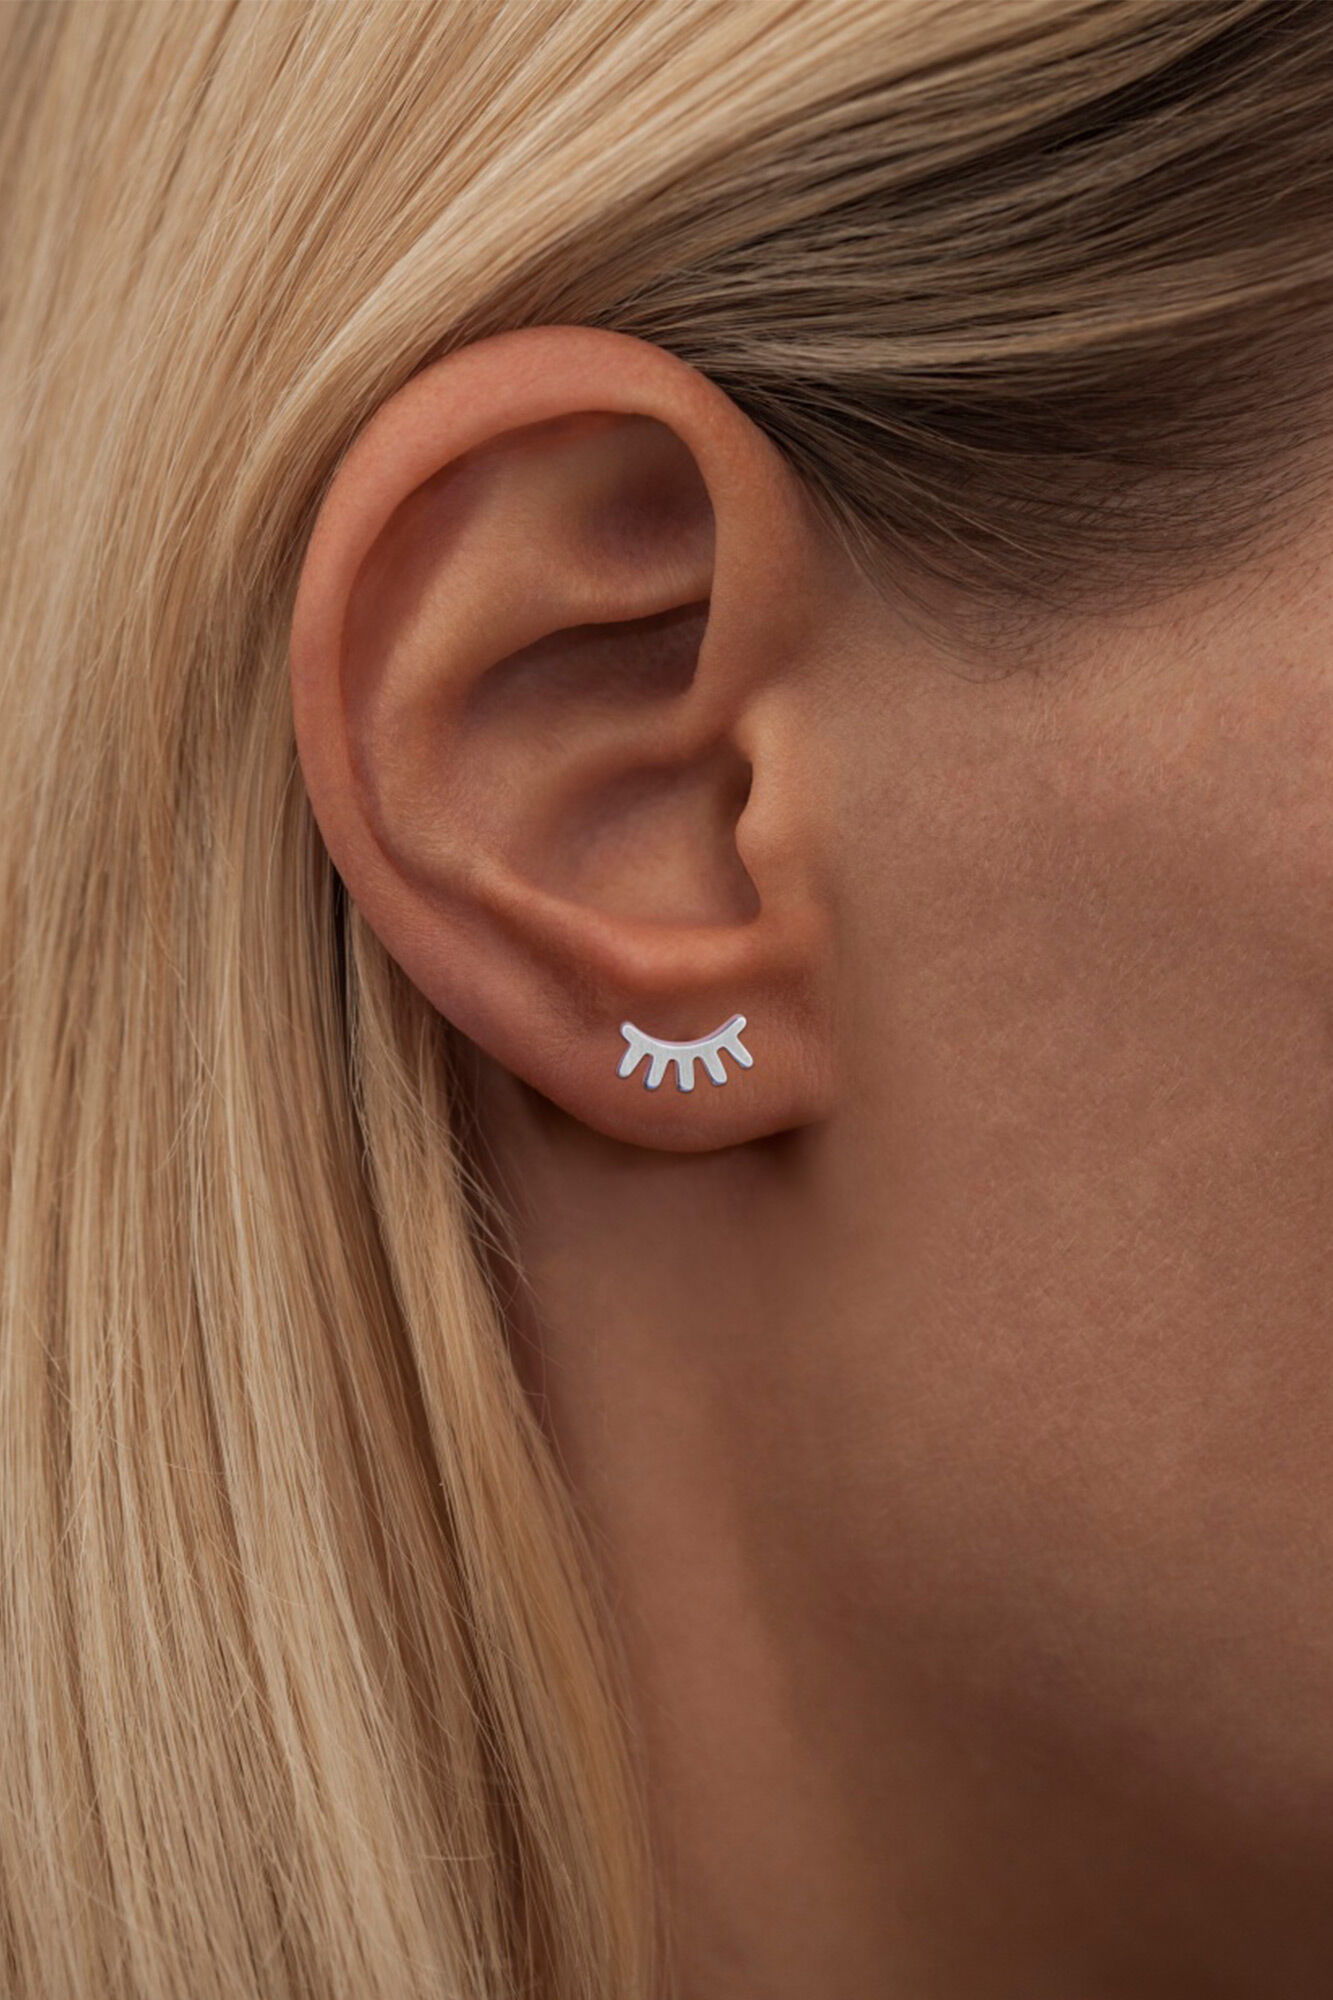 Blink Ear Stud LULUE151, SILVER MATTE